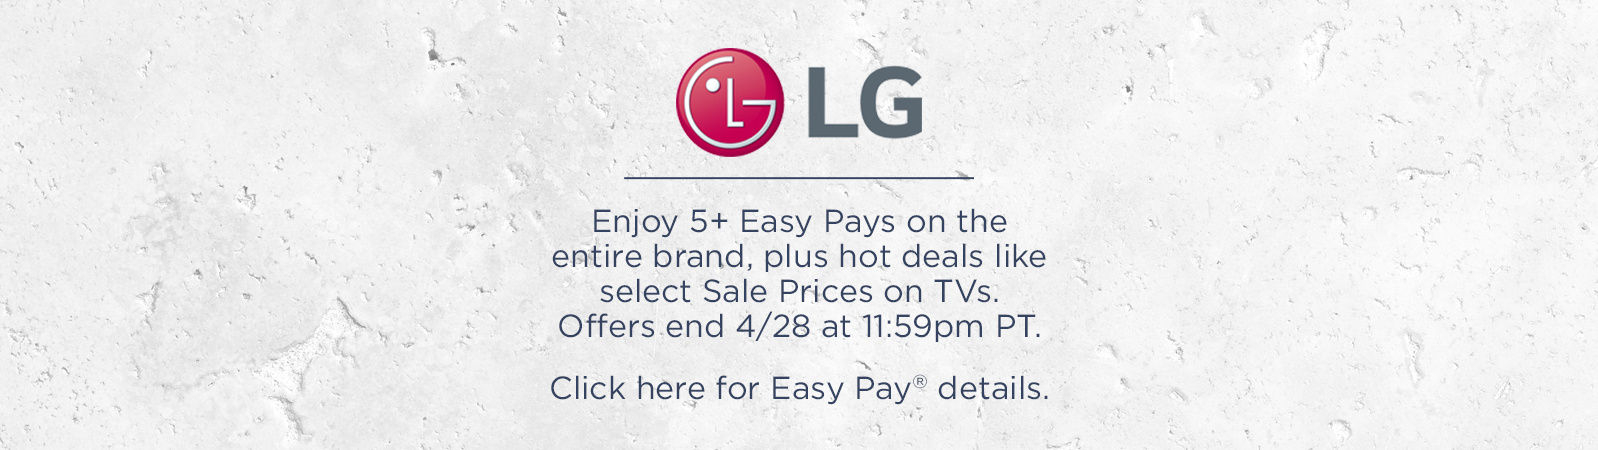 Hot Specials on LG TVs Score select Sale Prices, plus Easy Pay® on ALL! Offers end 4/28 at 11:59pm PT.  Click here for Easy Pay details.